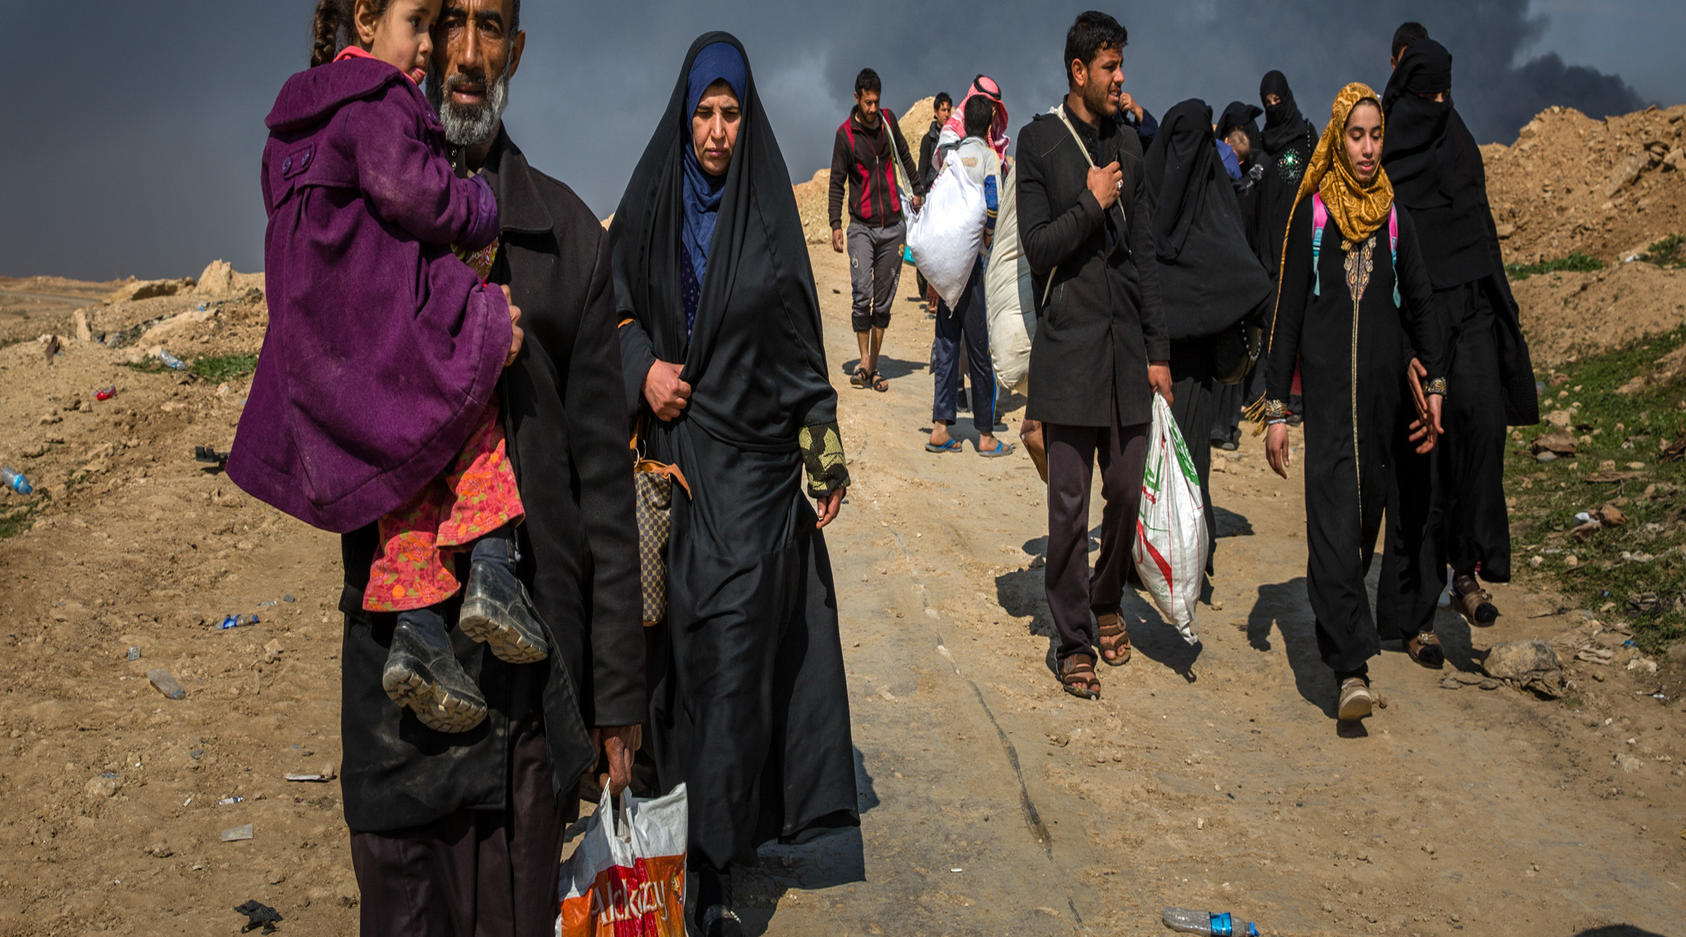 Civilians flee clashes between Iraqi forces and Islamic State fighters in western Mosul, Iraq, March 7, 2017. Car bombs snipers, mortar fire and coalition airstrikes have all taken a heavy toll on civilians during the offensive to oust the Islamic State group from Mosul.